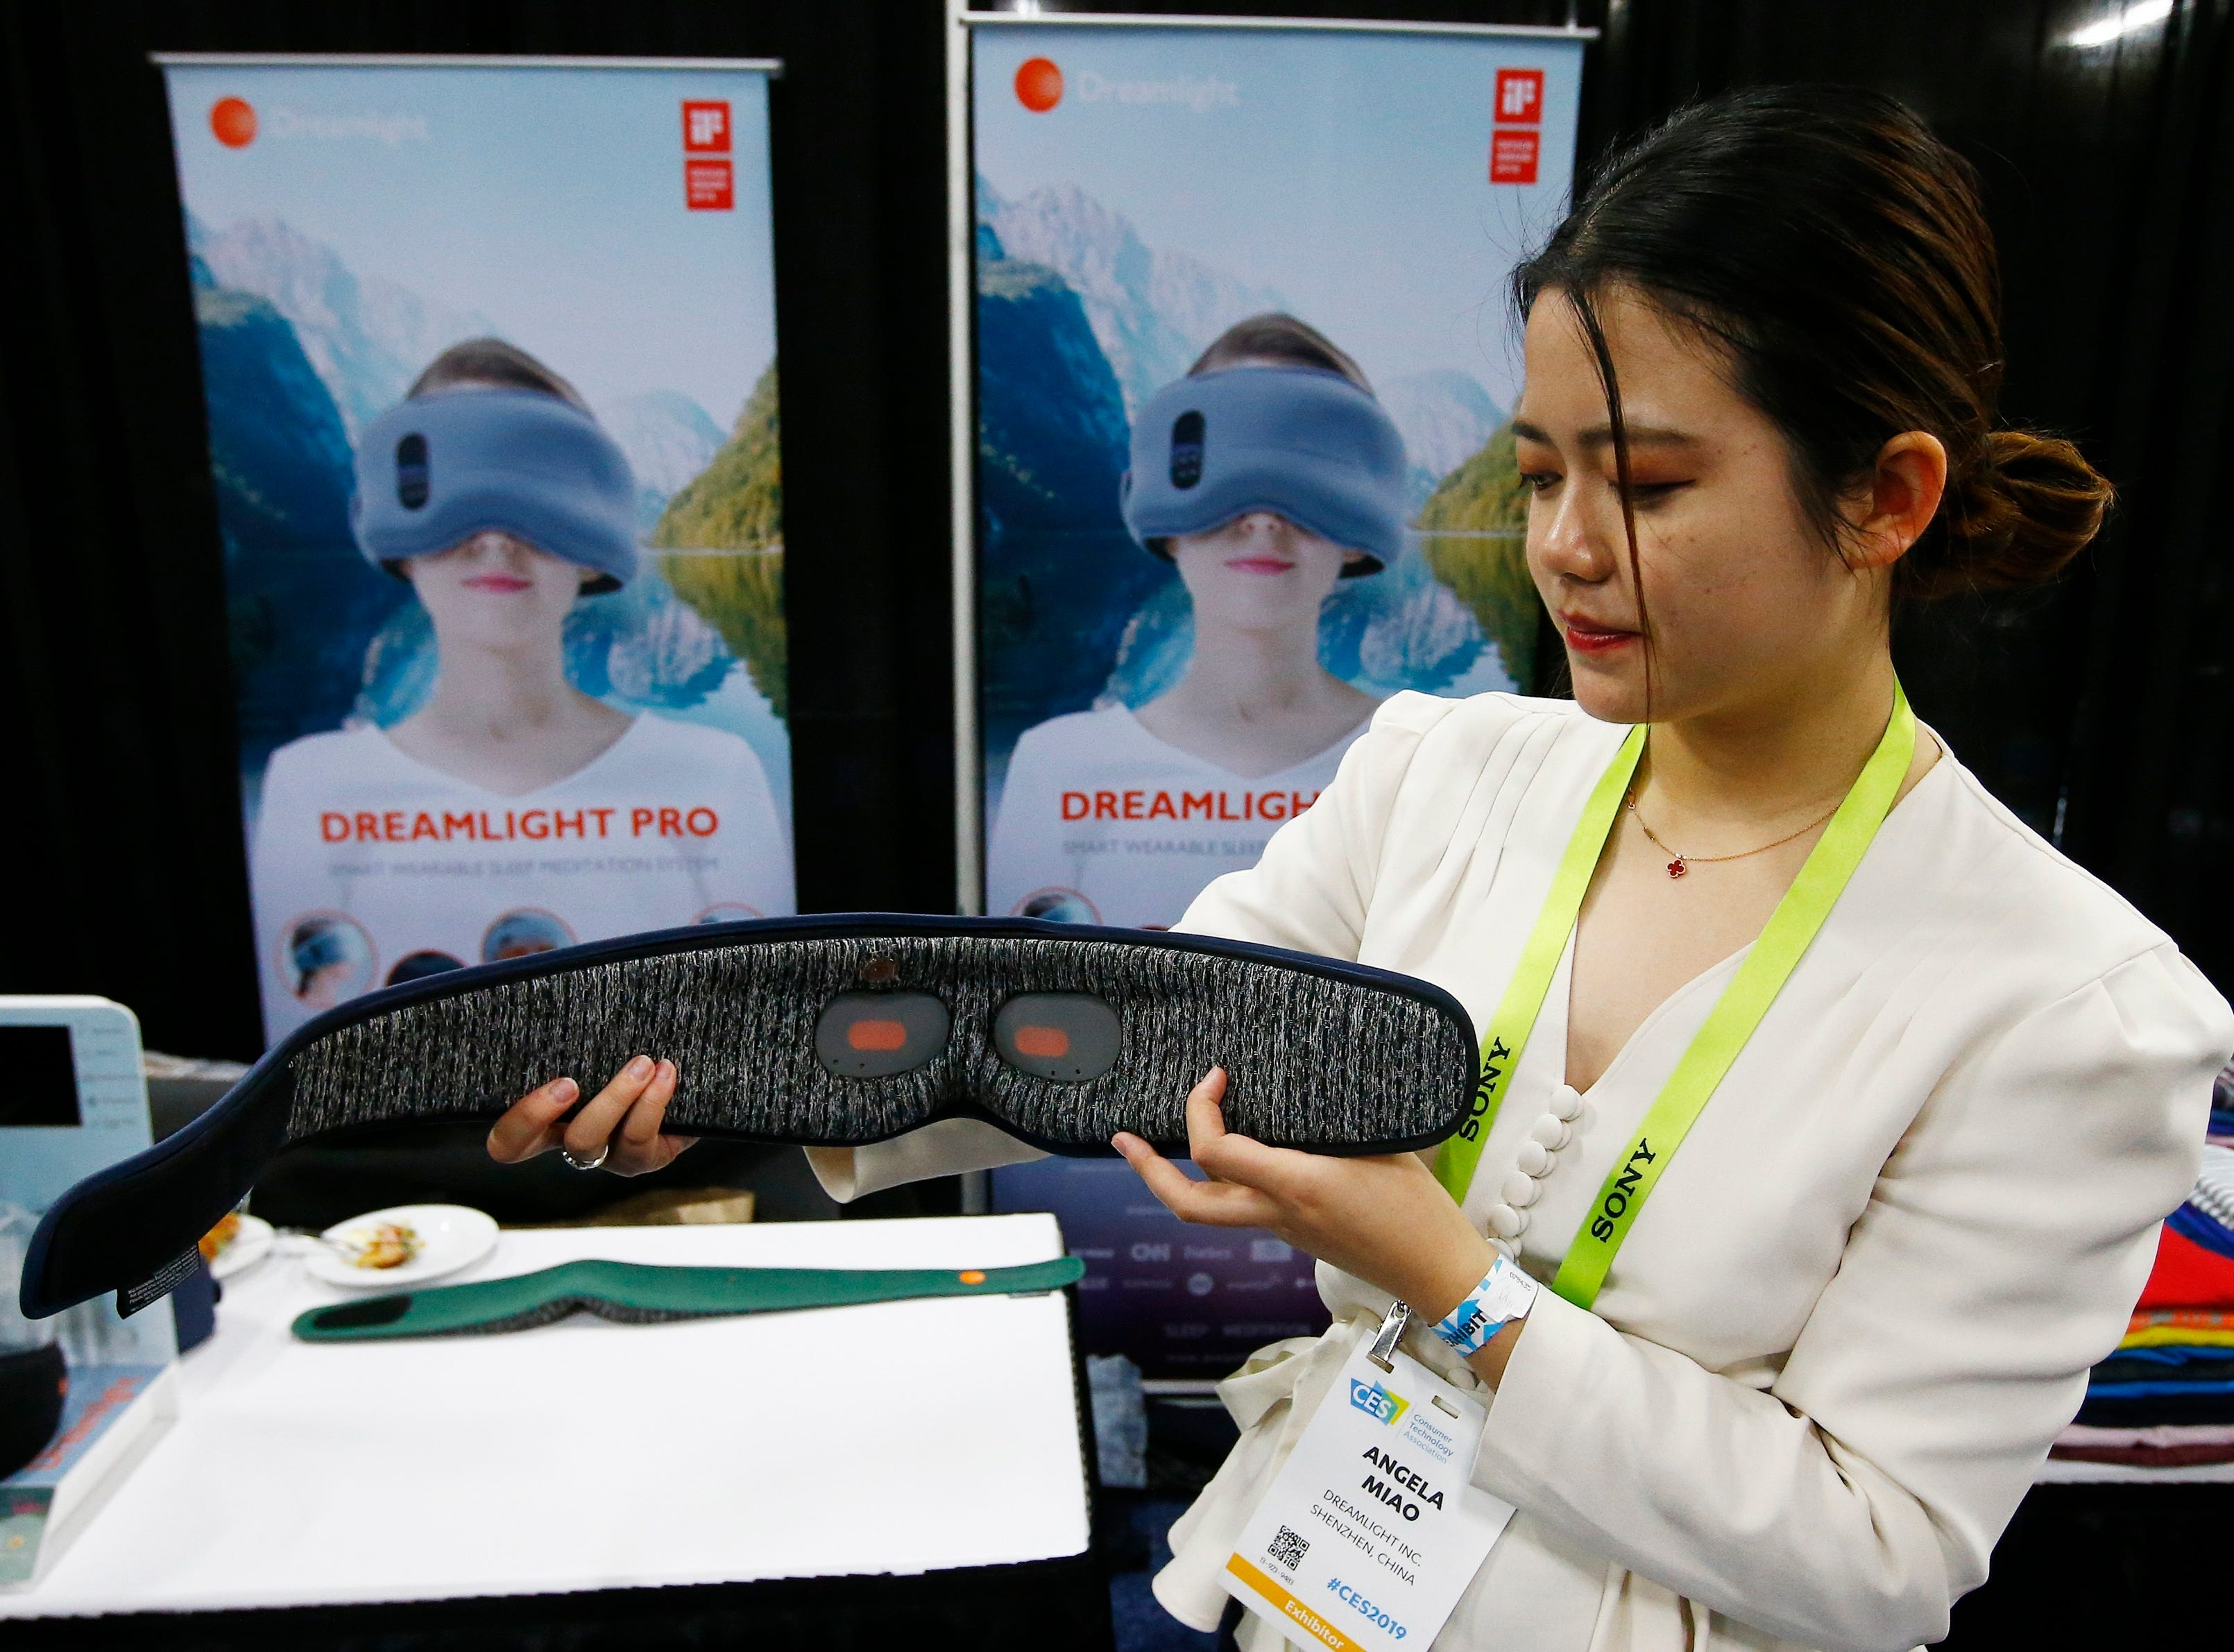 Angela Miao, of Dreamlight, demonstrates the new sleep mask Dreamlight Pro that uses light, sound and genetics so you fall asleep faster and wake up with more energy according to the company, at the CES Unveiled at CES International on Sunday, Jan. 6, 2019, in Las Vegas.